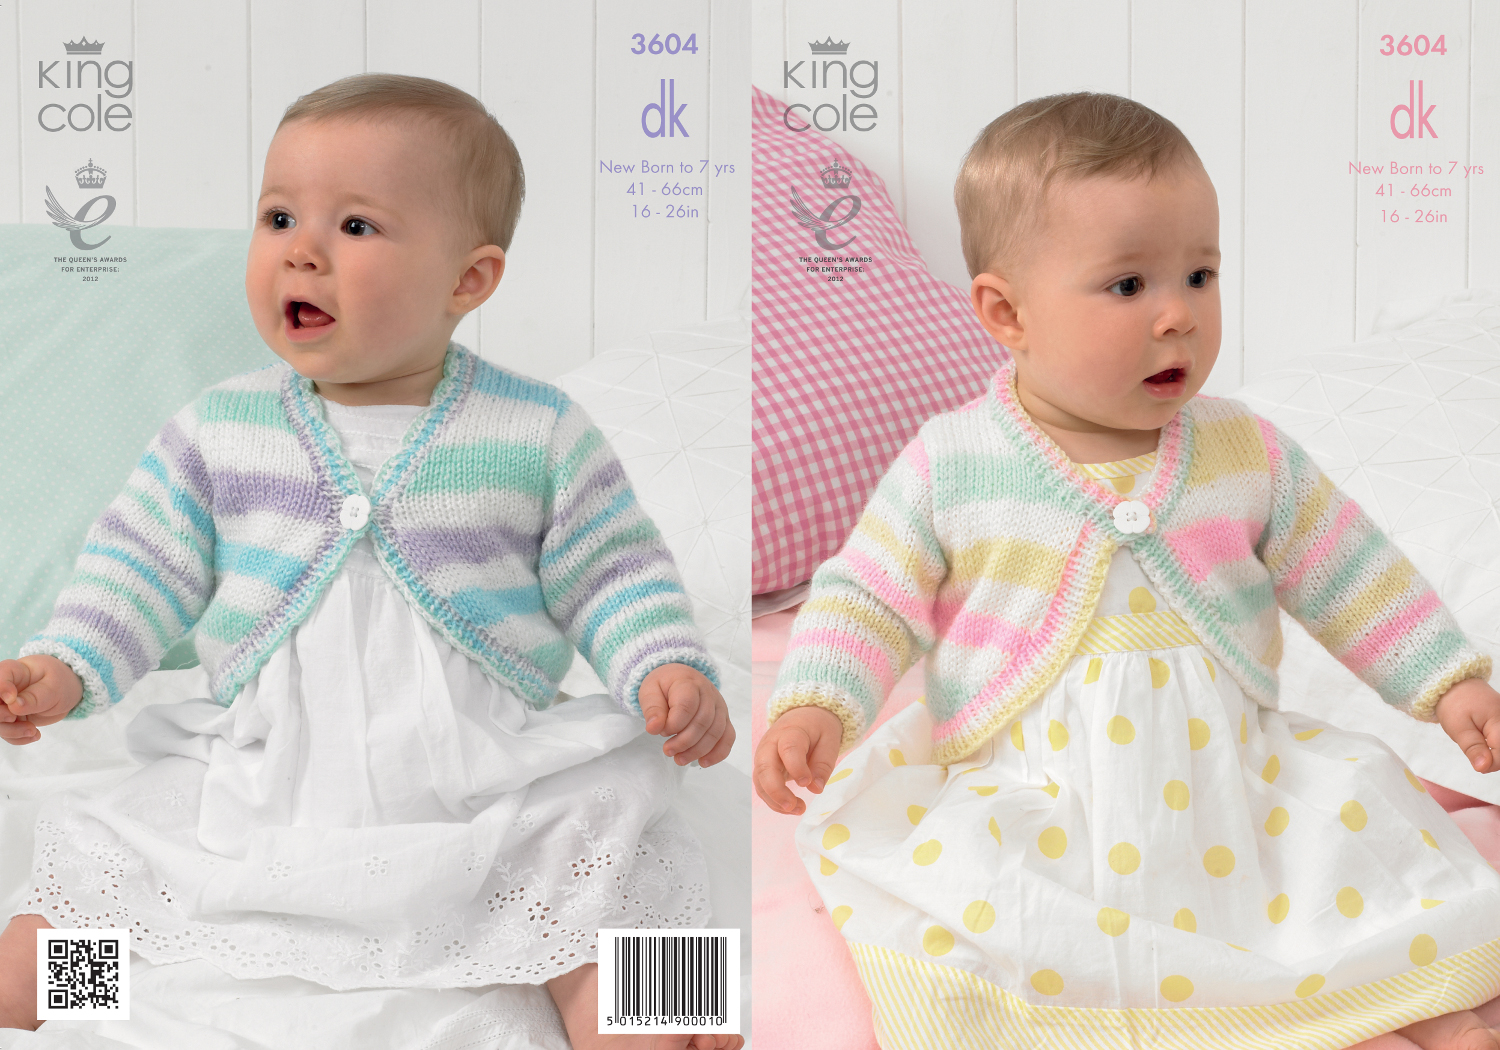 King cole baby double knitting dk pattern striped round or v neck king cole baby double knitting dk pattern striped round or v neck cardigans 3604 bankloansurffo Choice Image